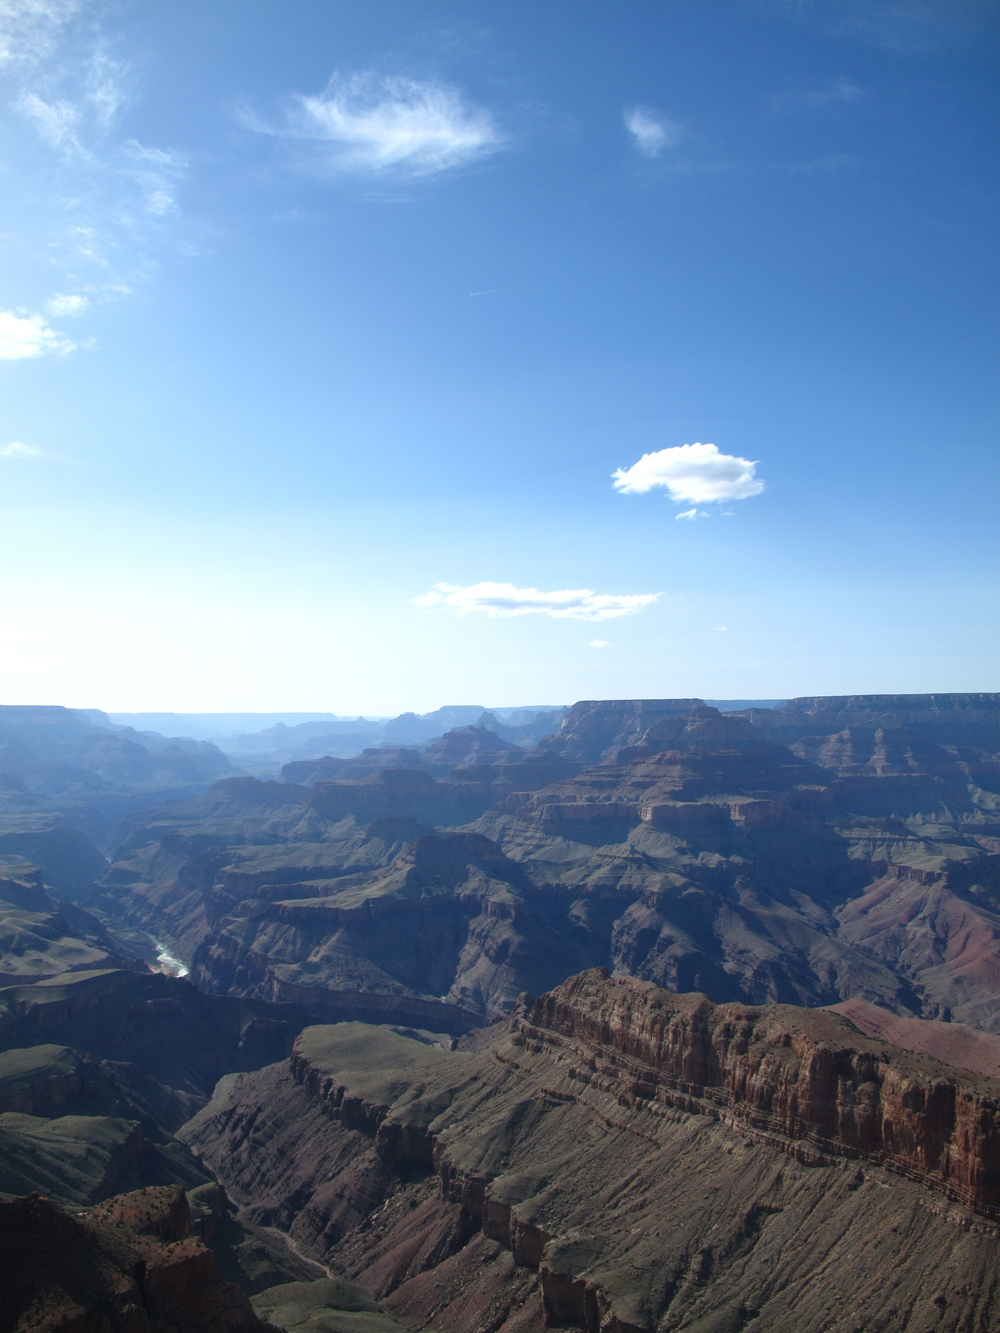 The Grand Canyon in the late afternoon - blue skies and shadows.